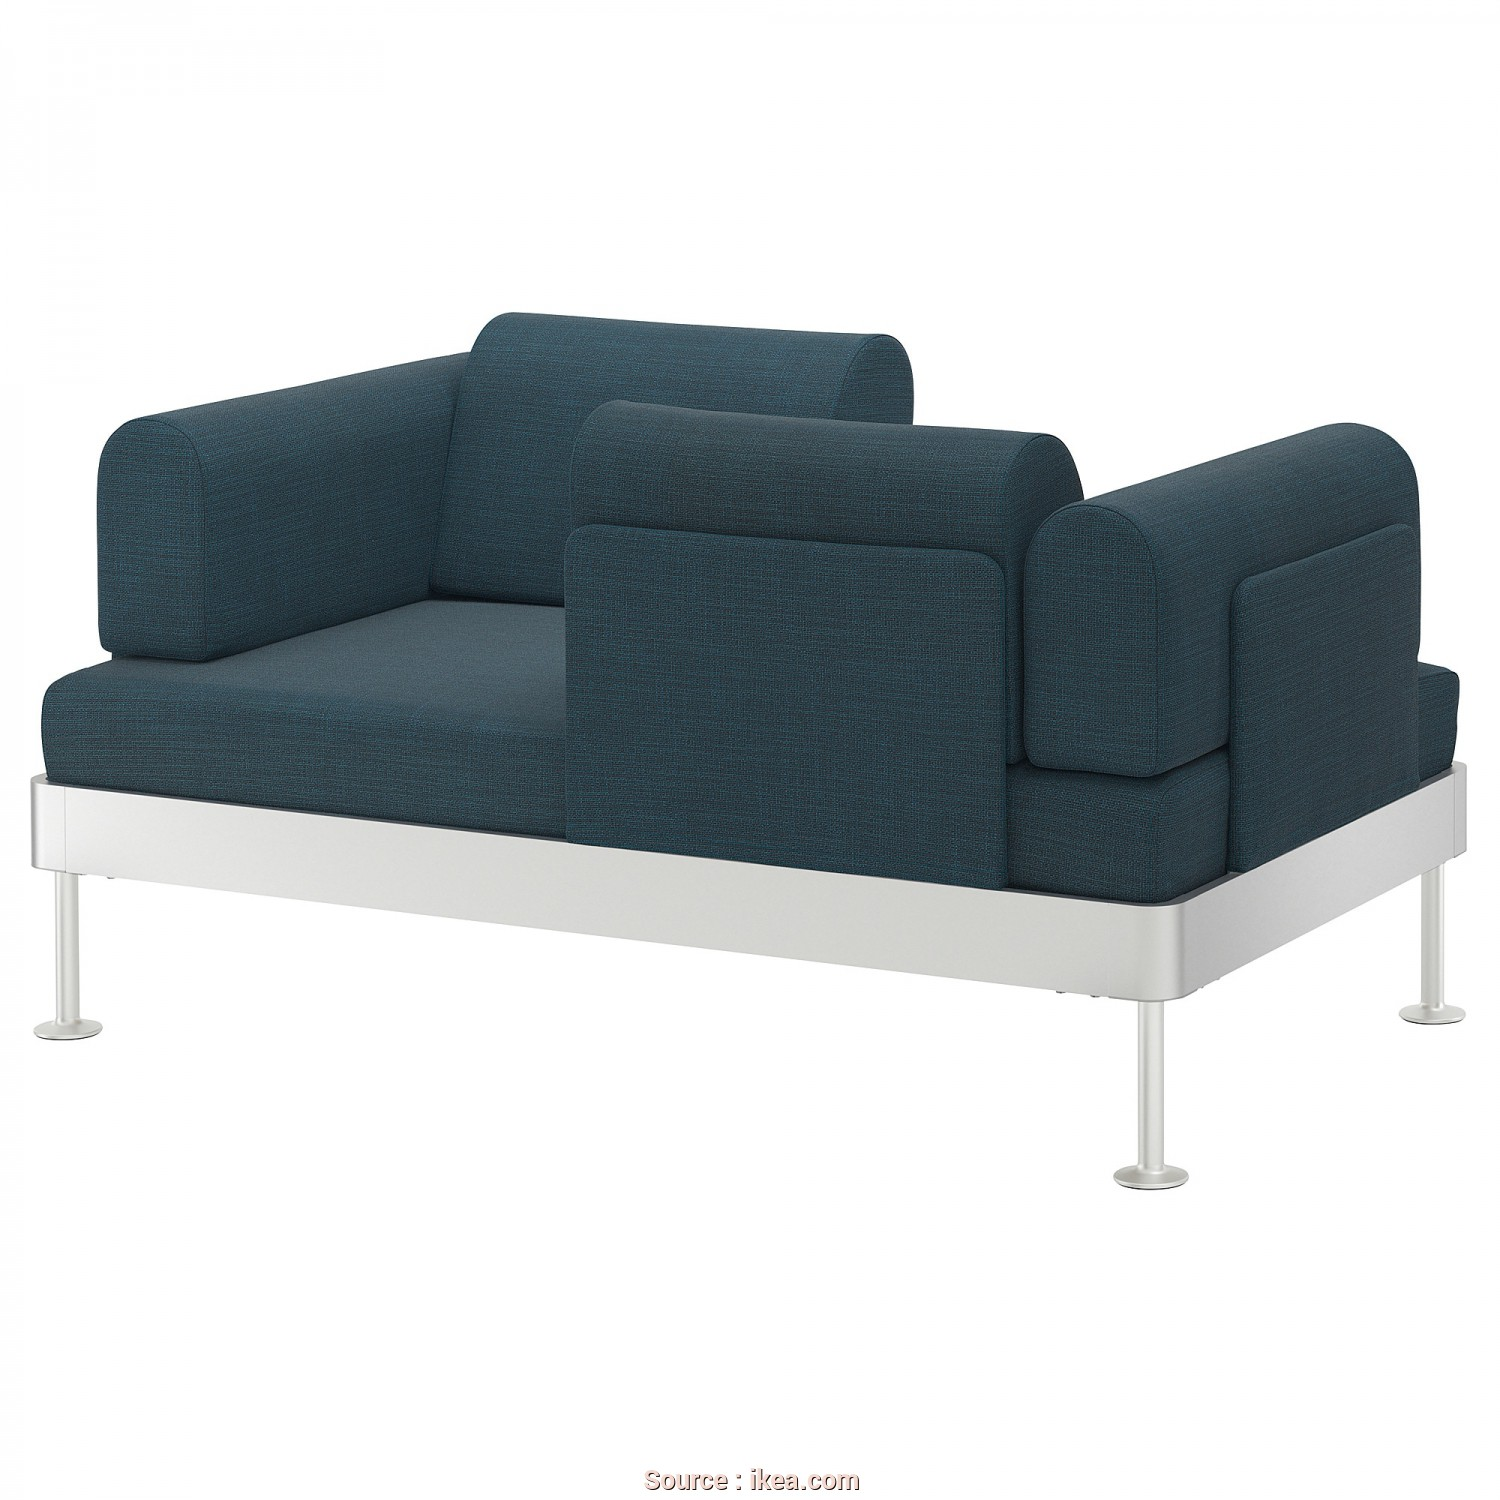 Futon Ikea Canada, Rustico IKEA DELAKTIG 2-Seat Sofa, Cover Is Easy To Keep Clean As It Is